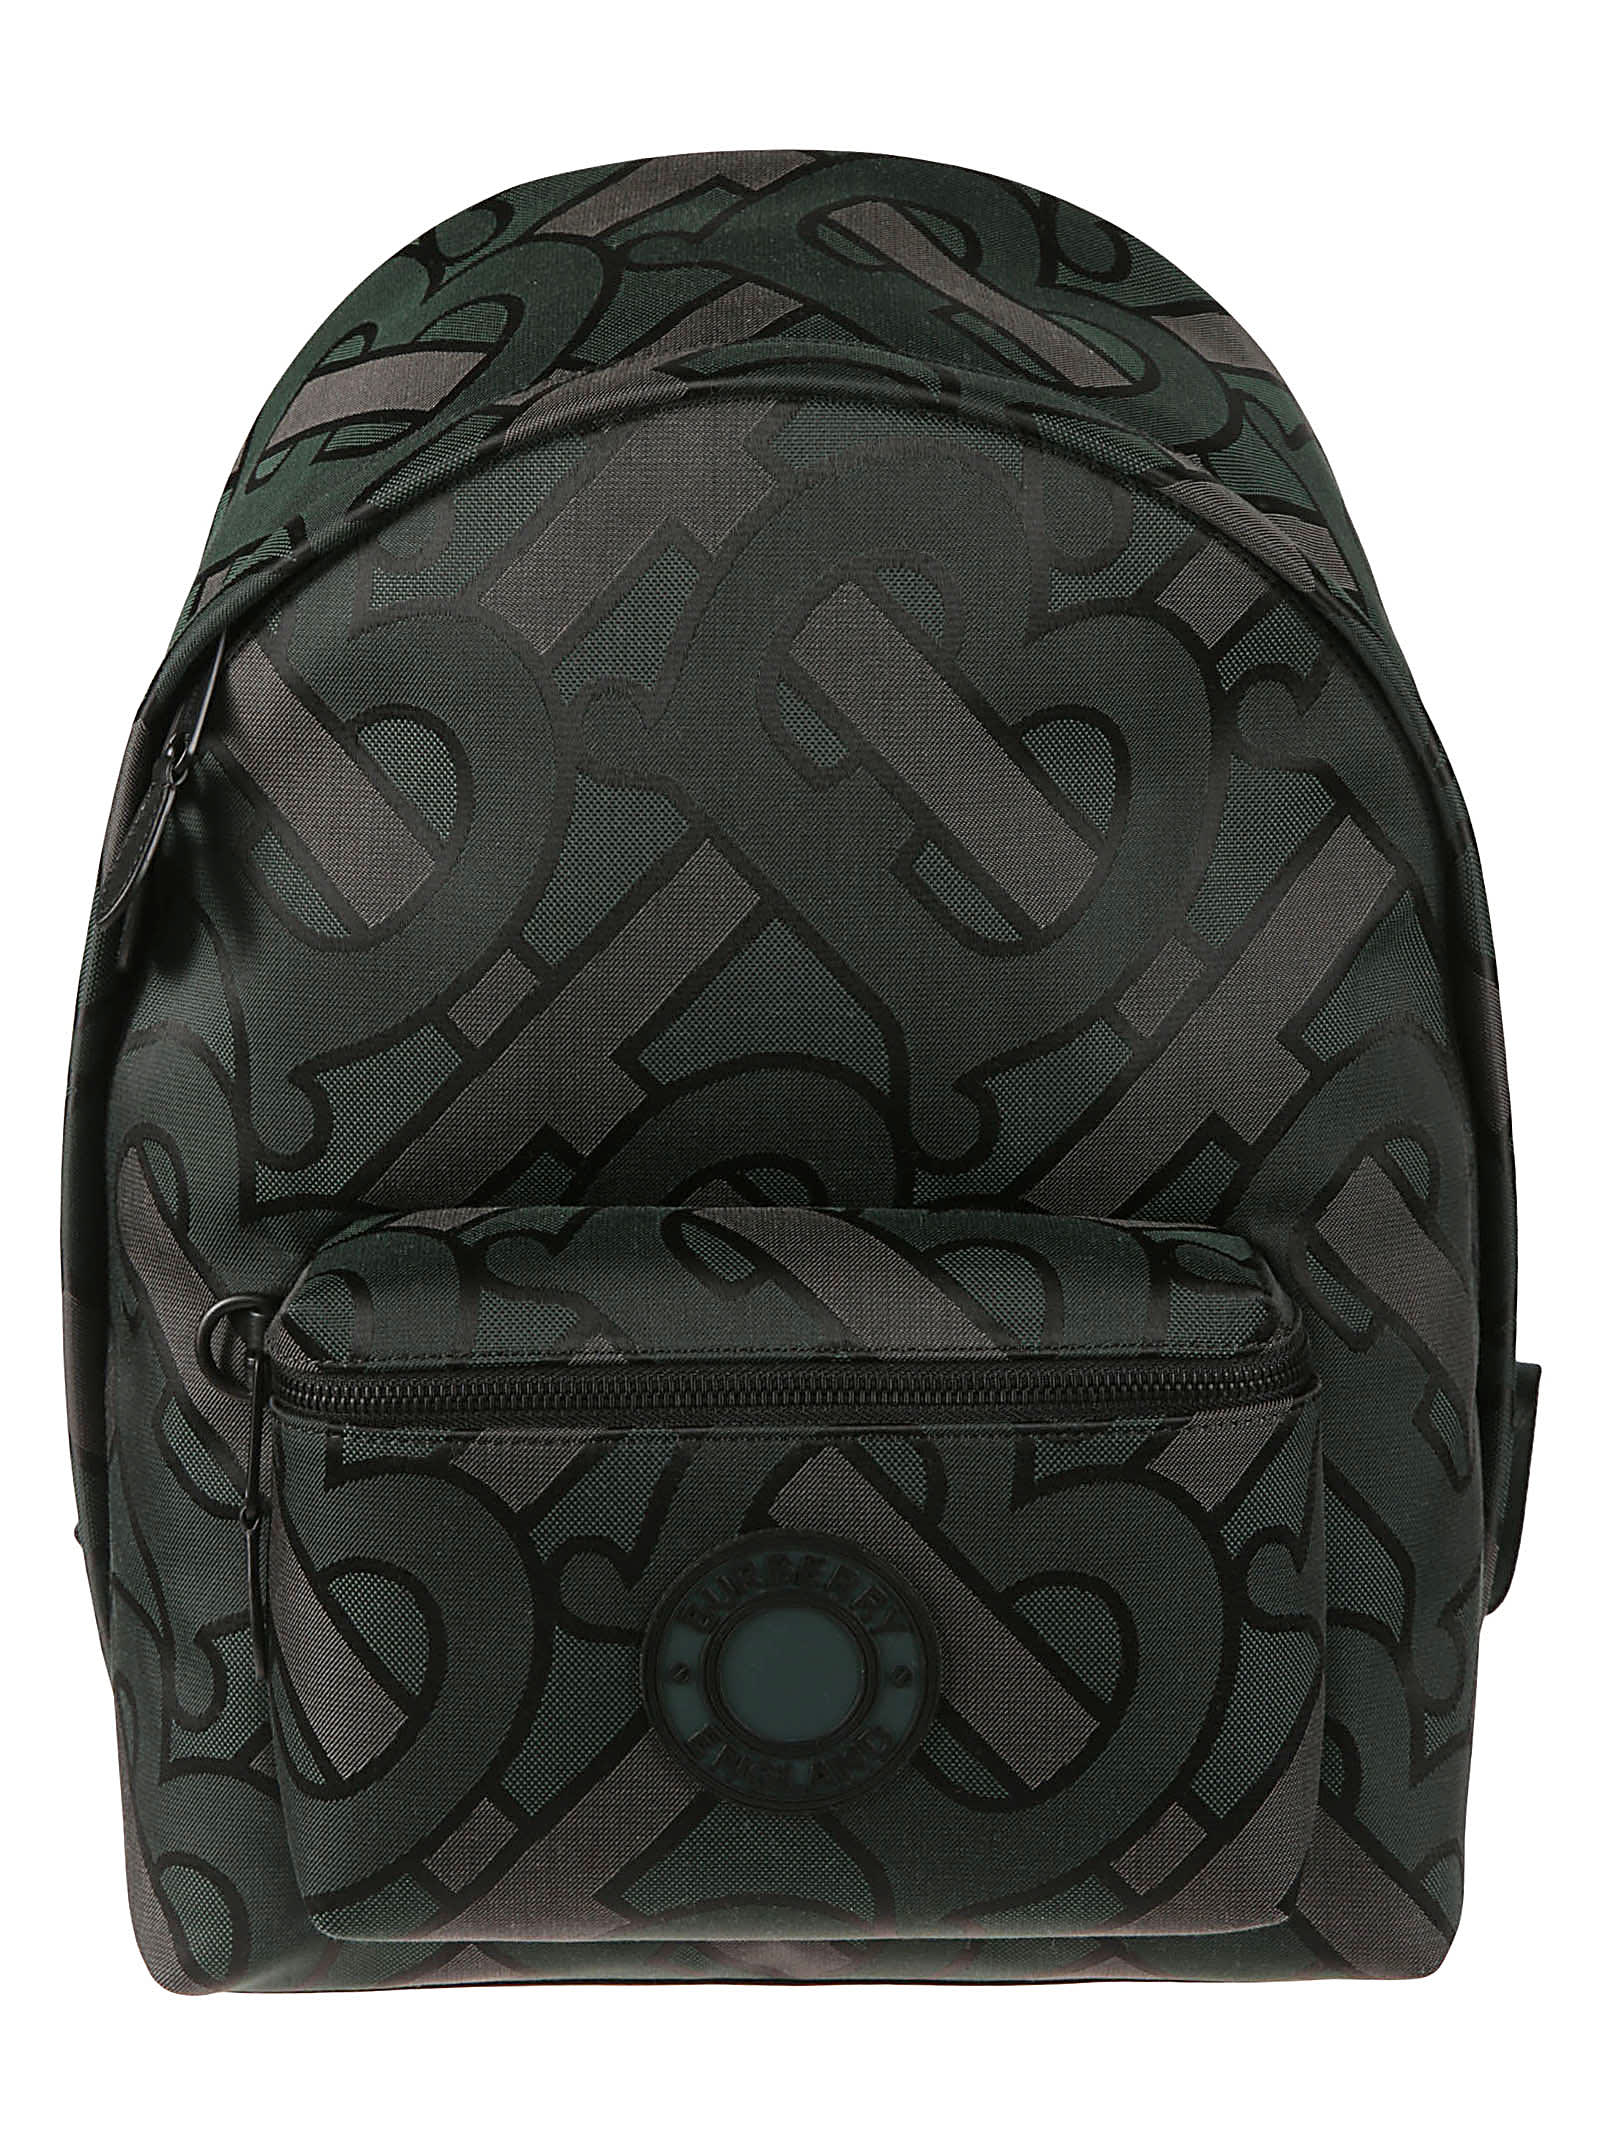 BURBERRY LOGO PATCH BACKPACK